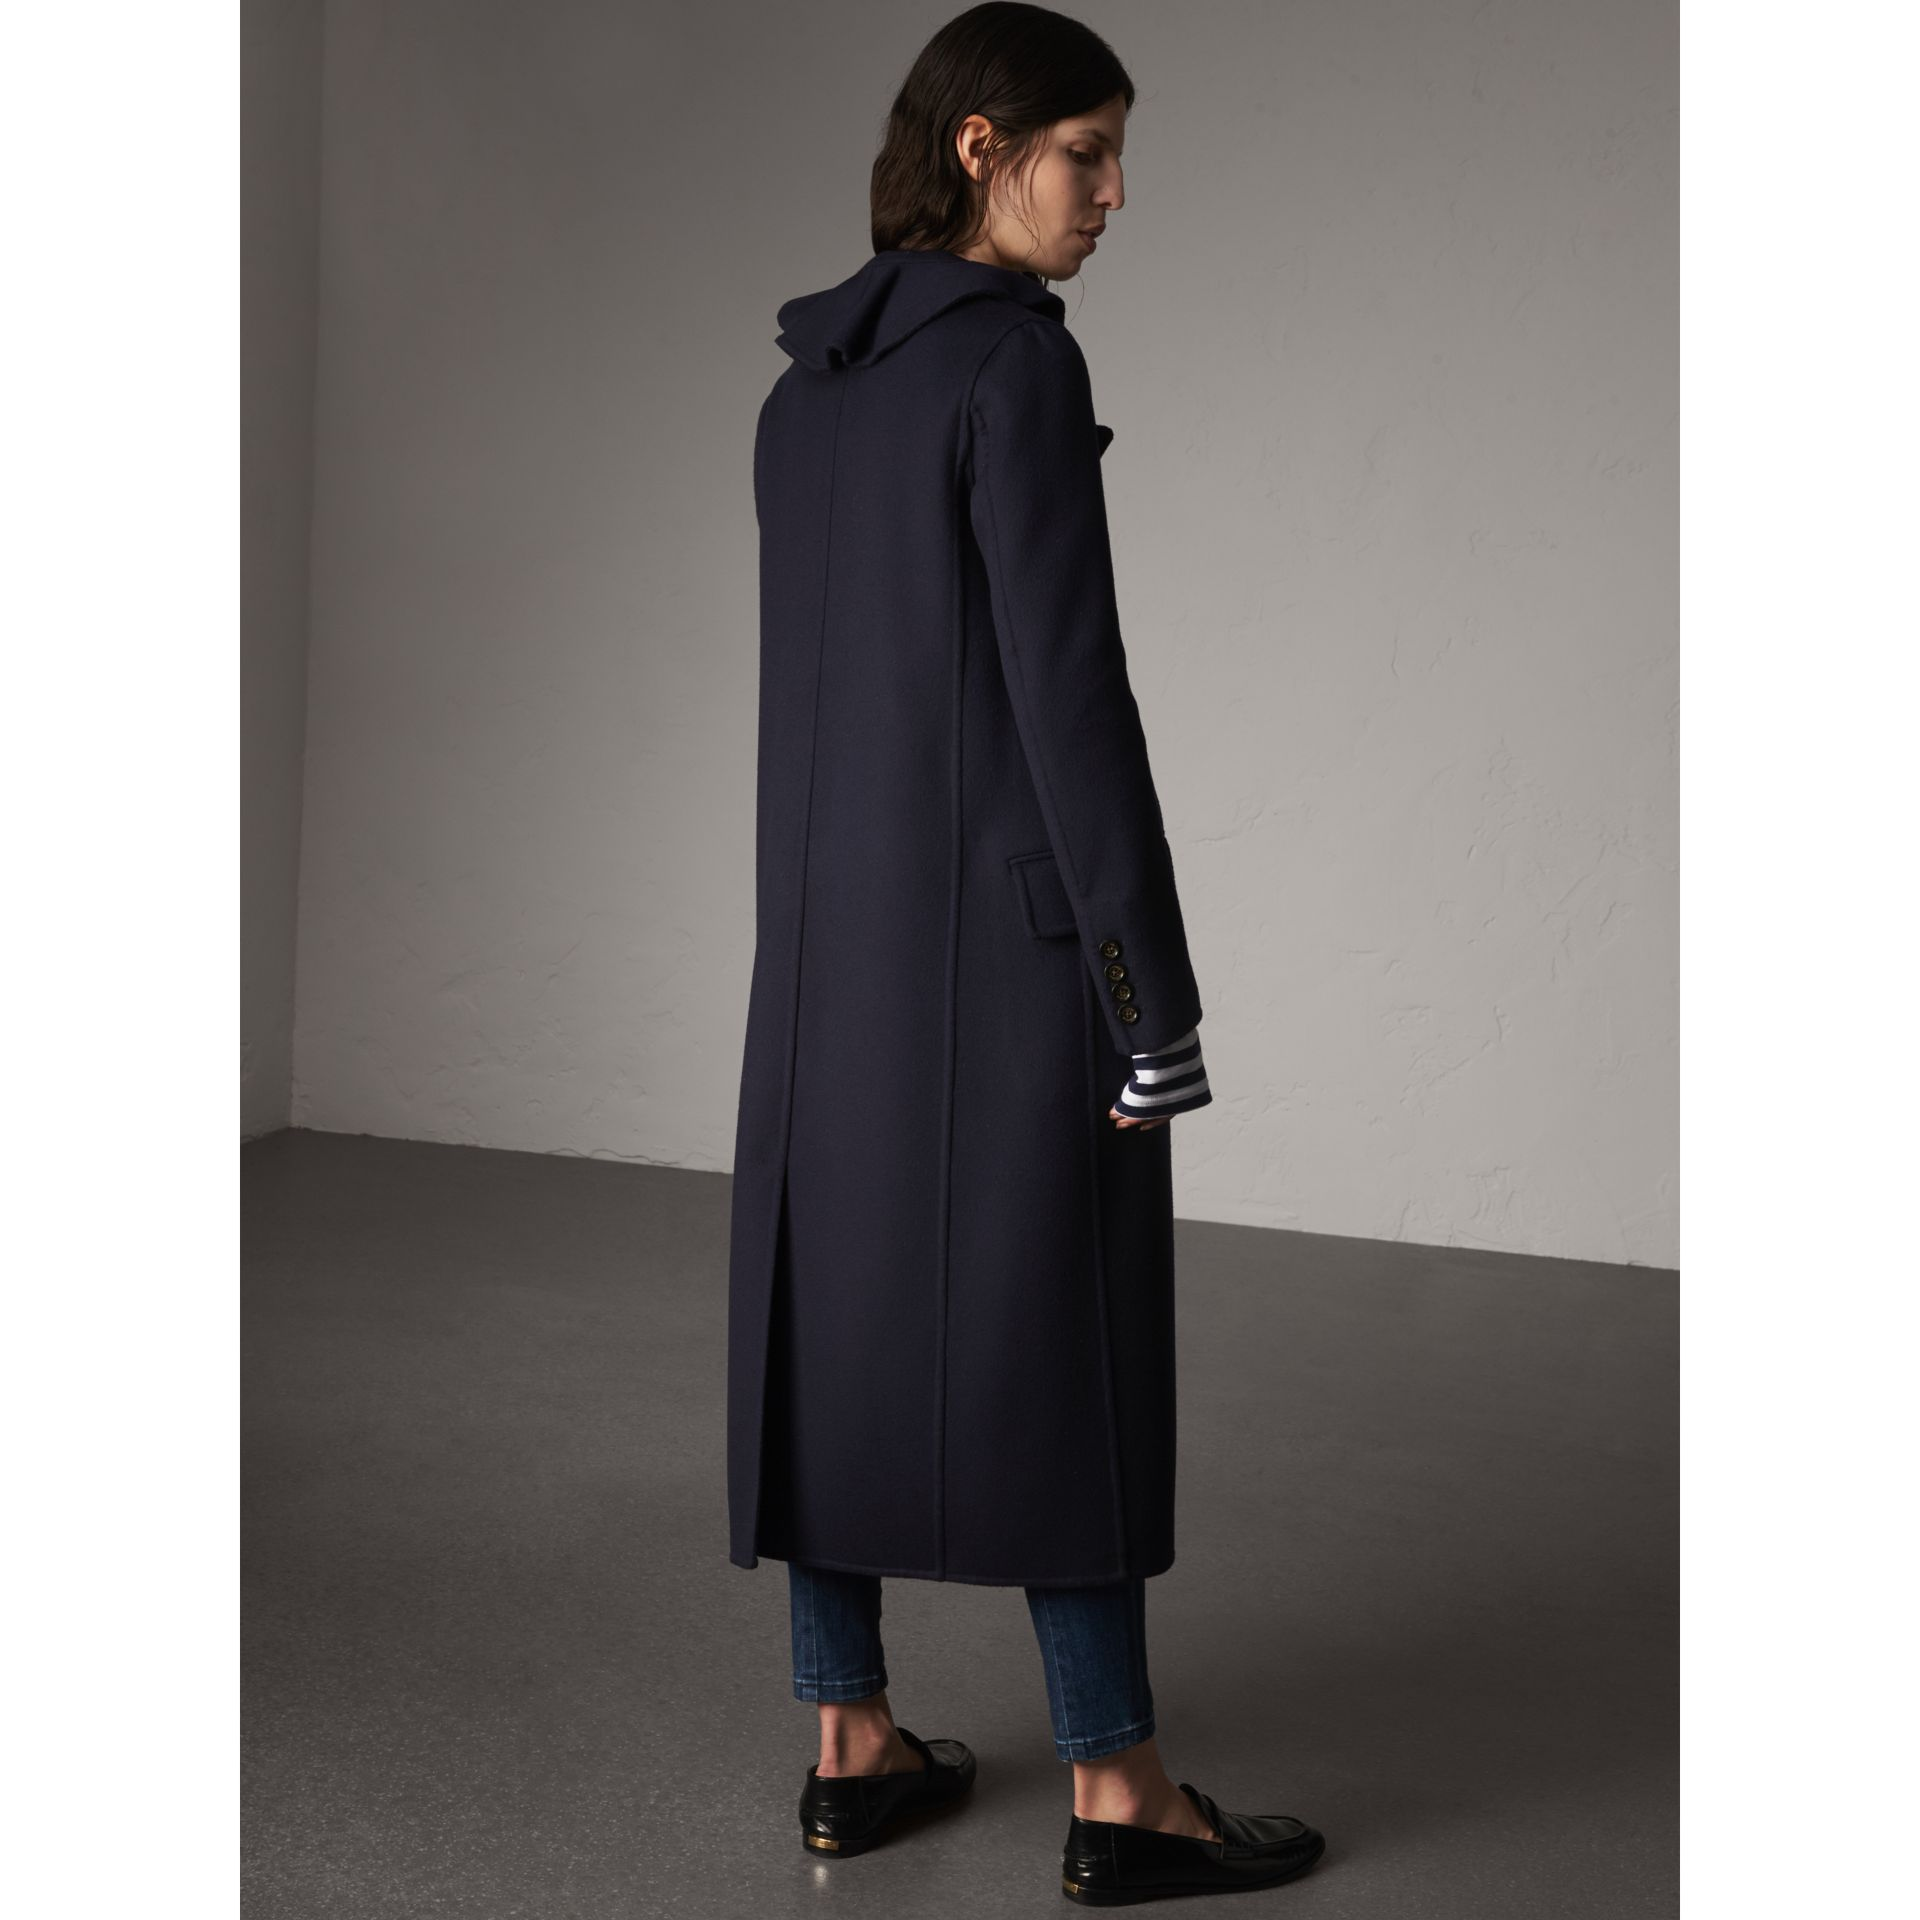 Ruffled Collar Wool Cashmere Coat in Navy - Women | Burberry Canada - gallery image 3